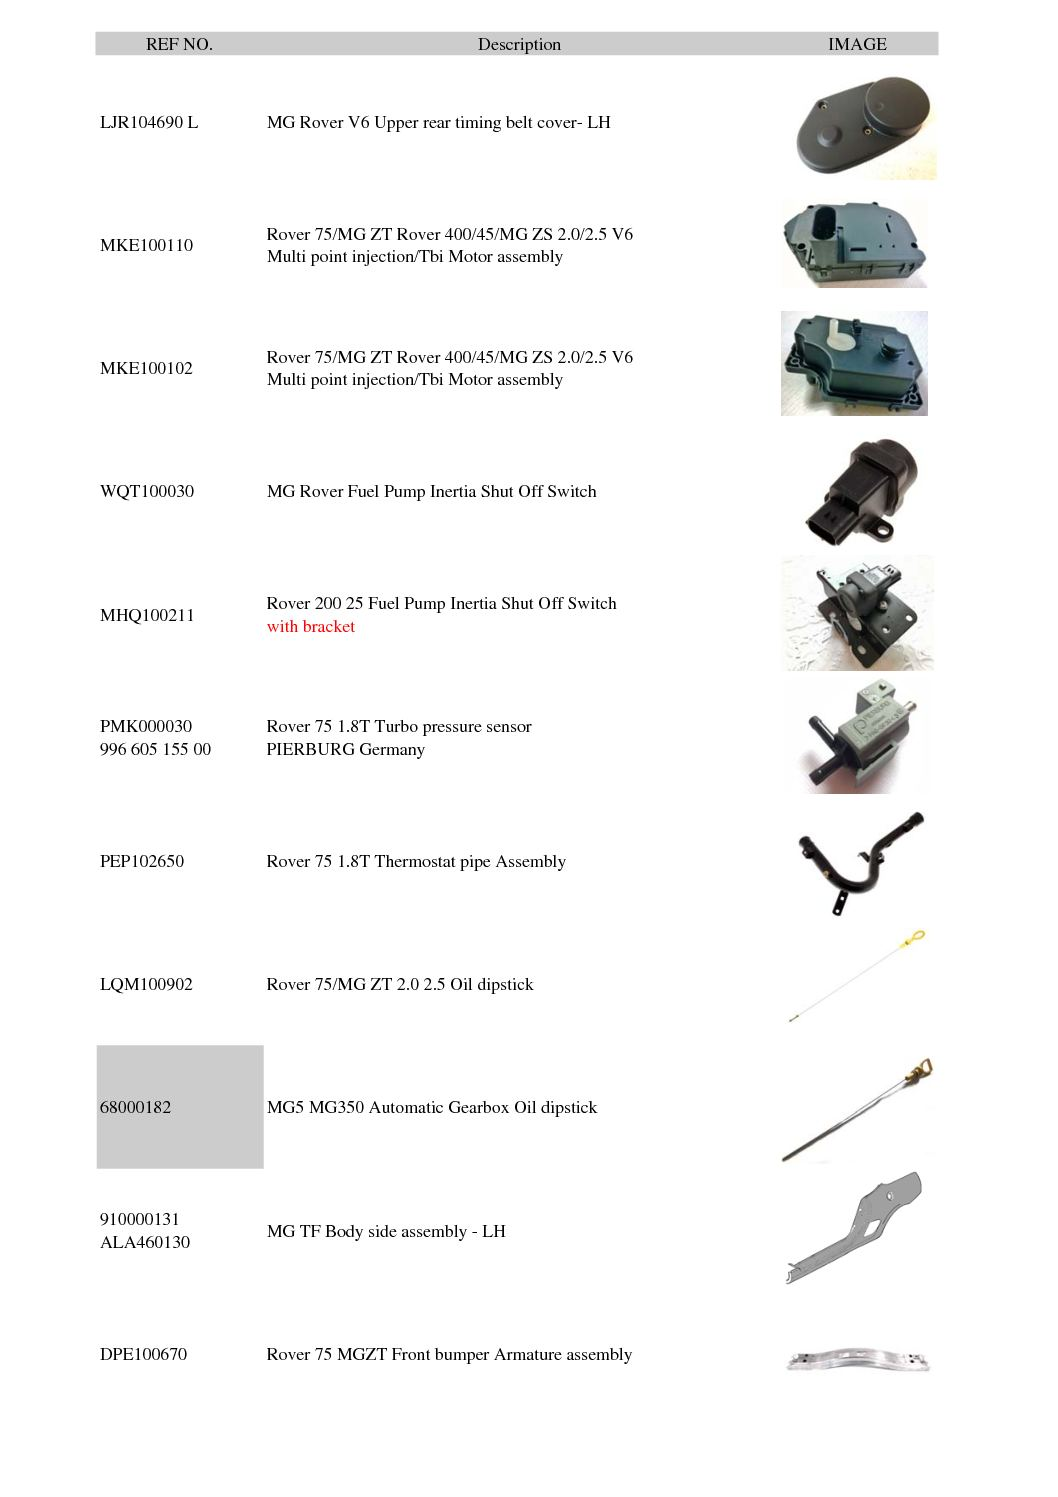 Fiacom Mg Rover Promotion Parts List Calameo Downloader Fuel Pump Inertia Shut Off Switch Page 28